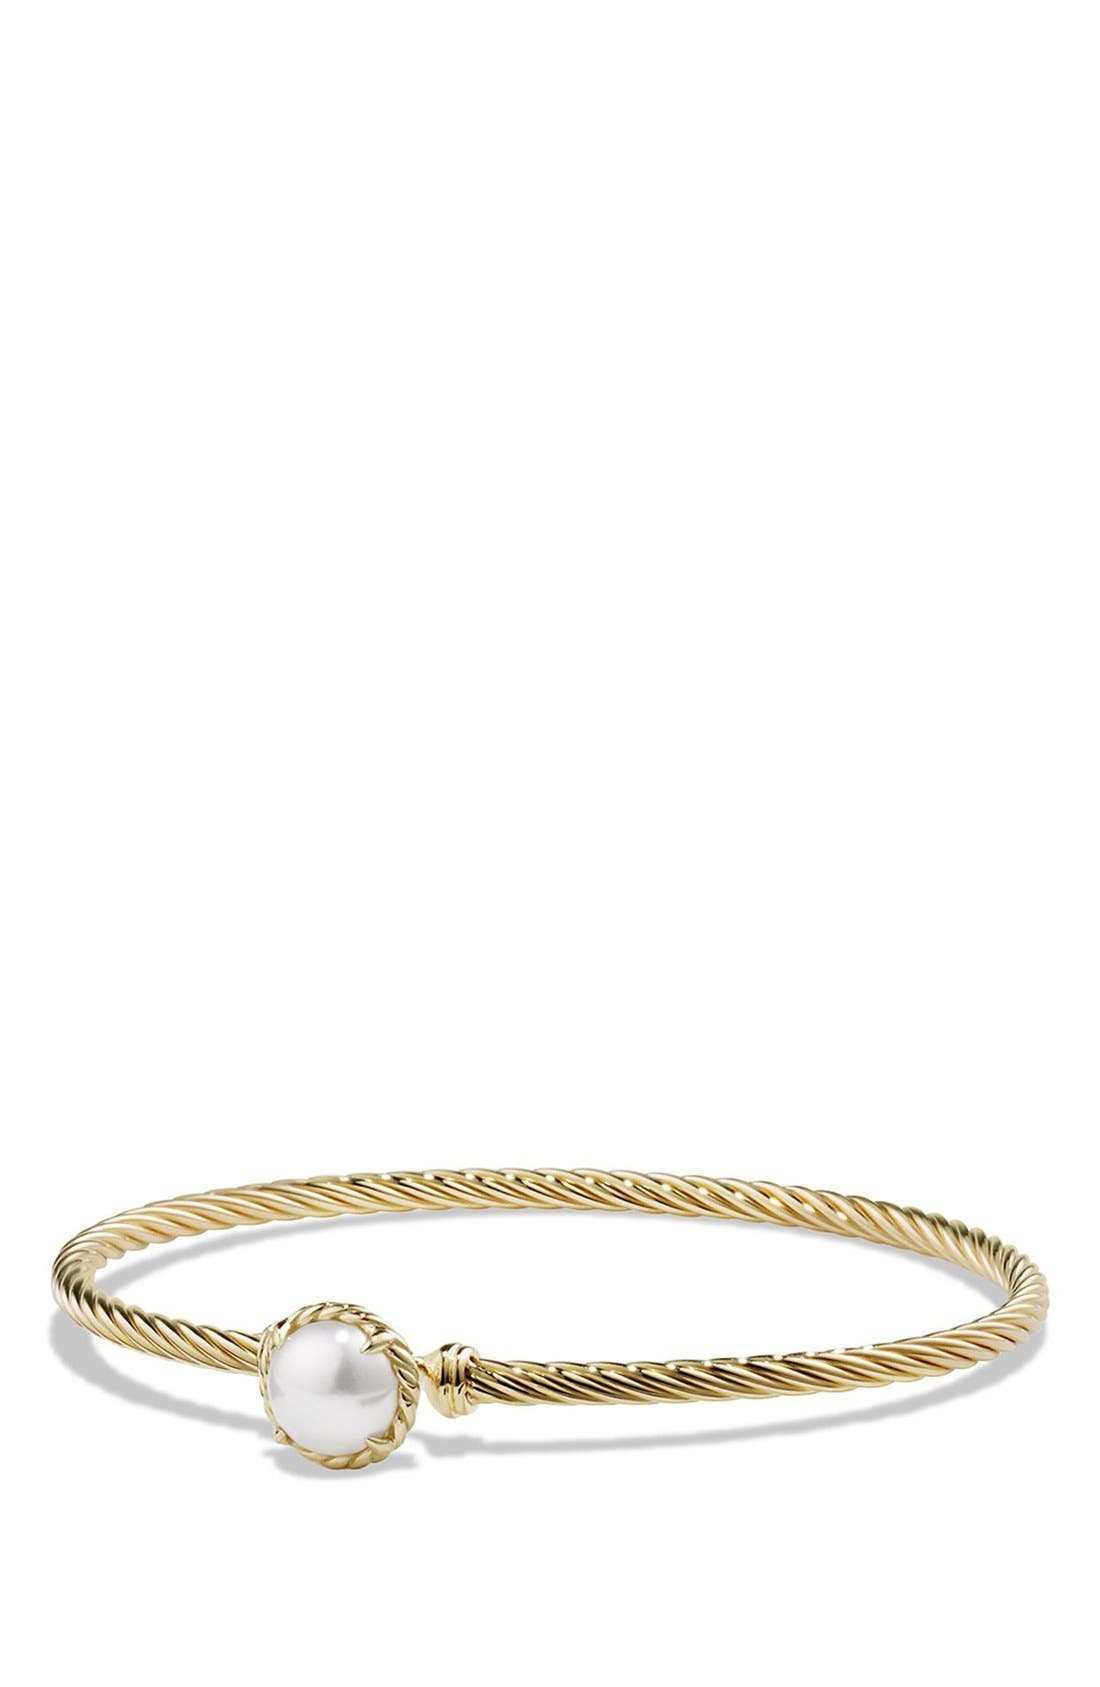 David Yurman 'Châtelaine' Bracelet with Garnet in 18K Gold